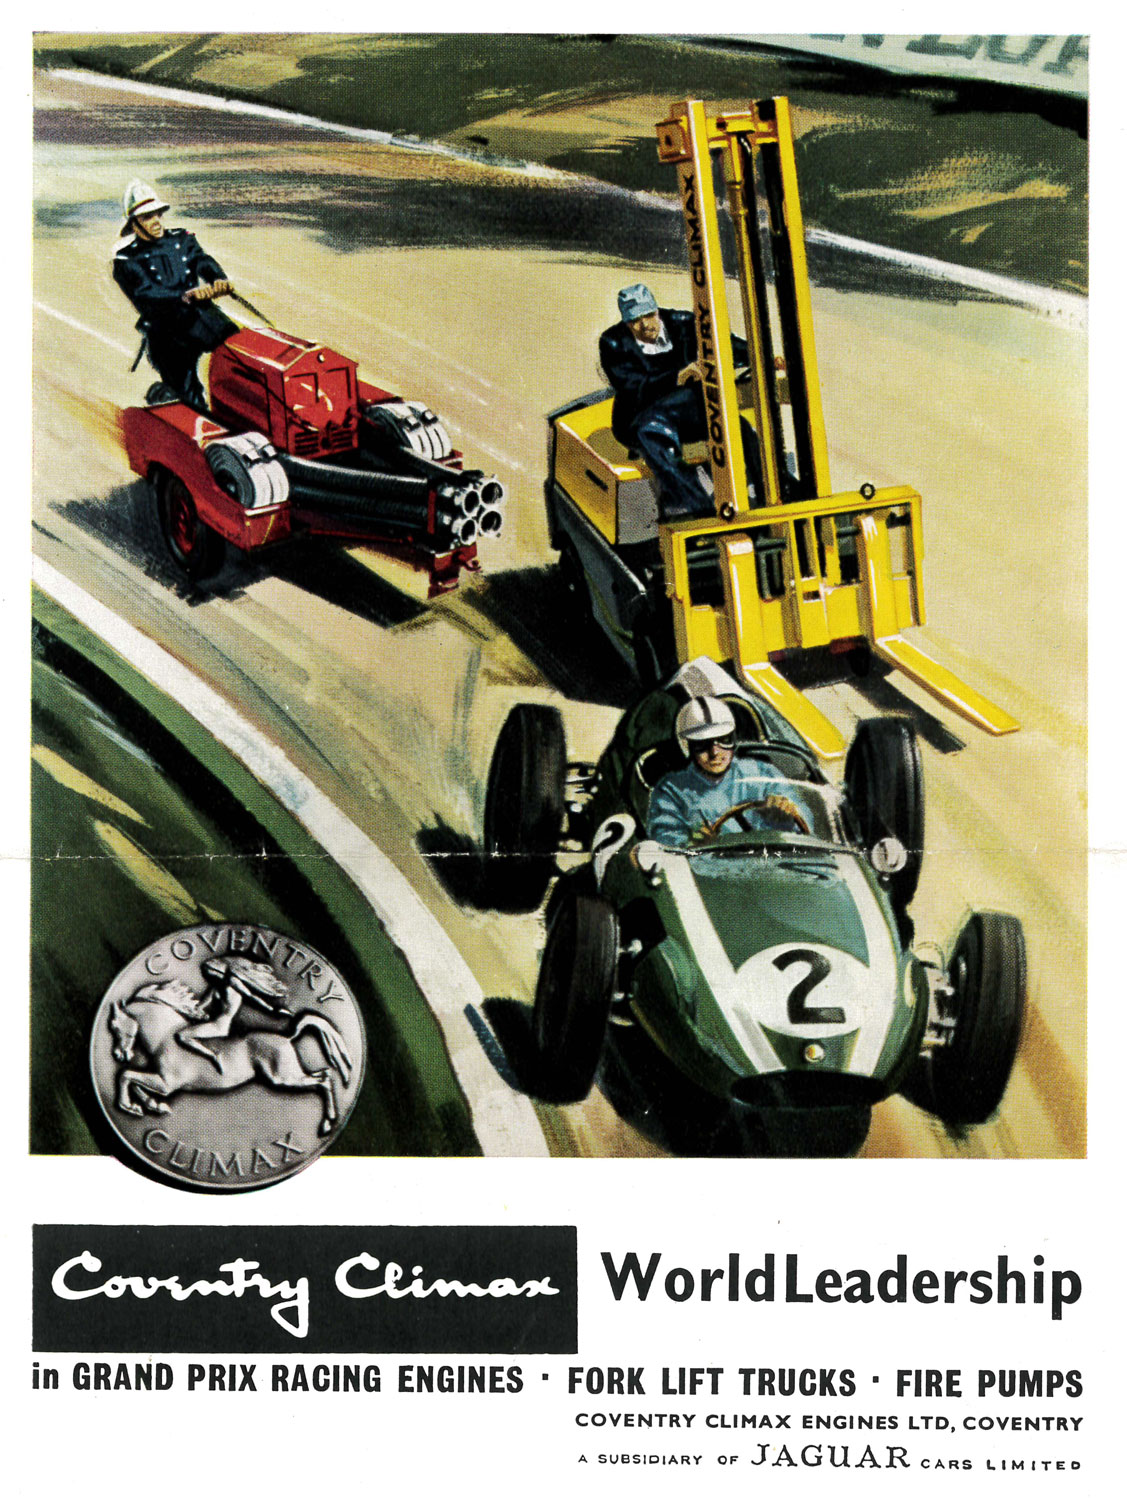 From forklifts to Grand Prix race cars.